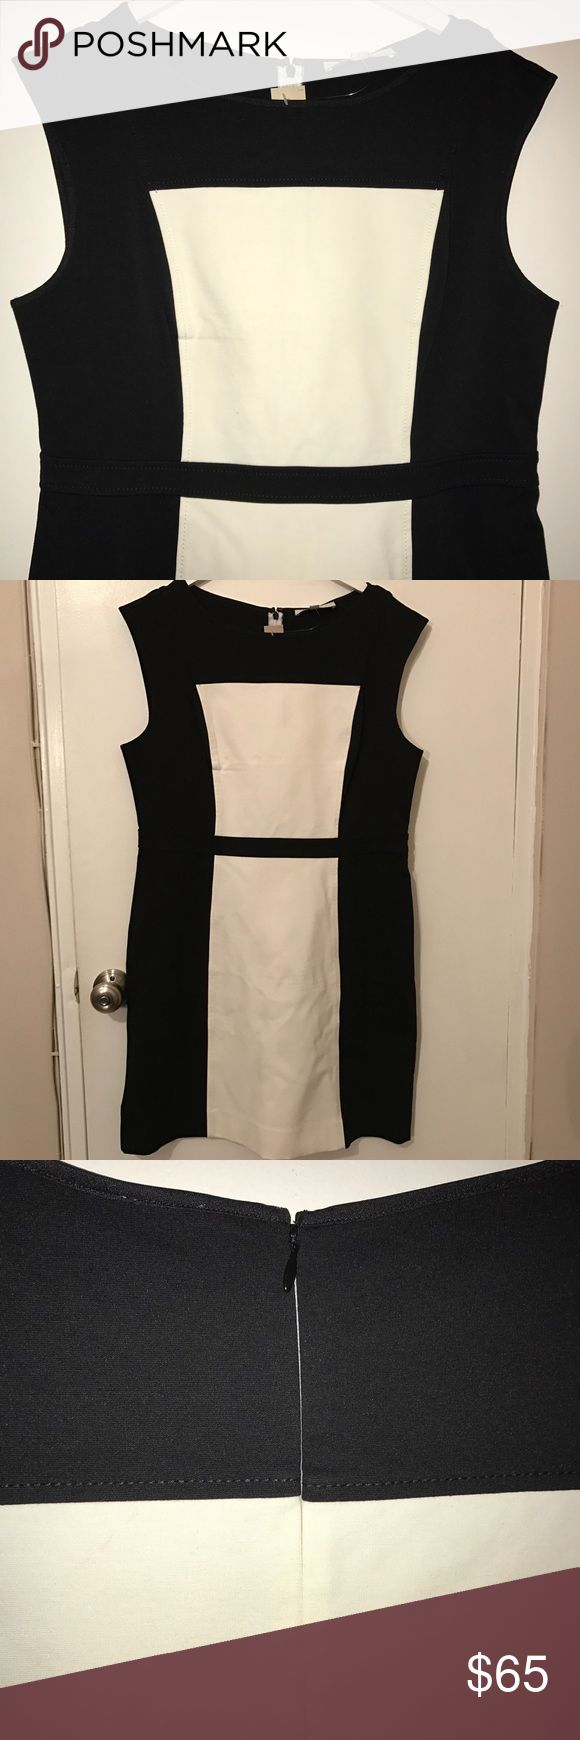 Ann Taylor LOFT dress Blk/Wht stretch This Ann Taylor LOFT dress is incredible. It has a ton of stretch, to fit your curves. black and cream/white with a hidden zipper, this dress works great for work, dinner, a date, a wedding, or just brunch with the girls! Don't miss out! (Sorry, no trades) LOFT Dresses